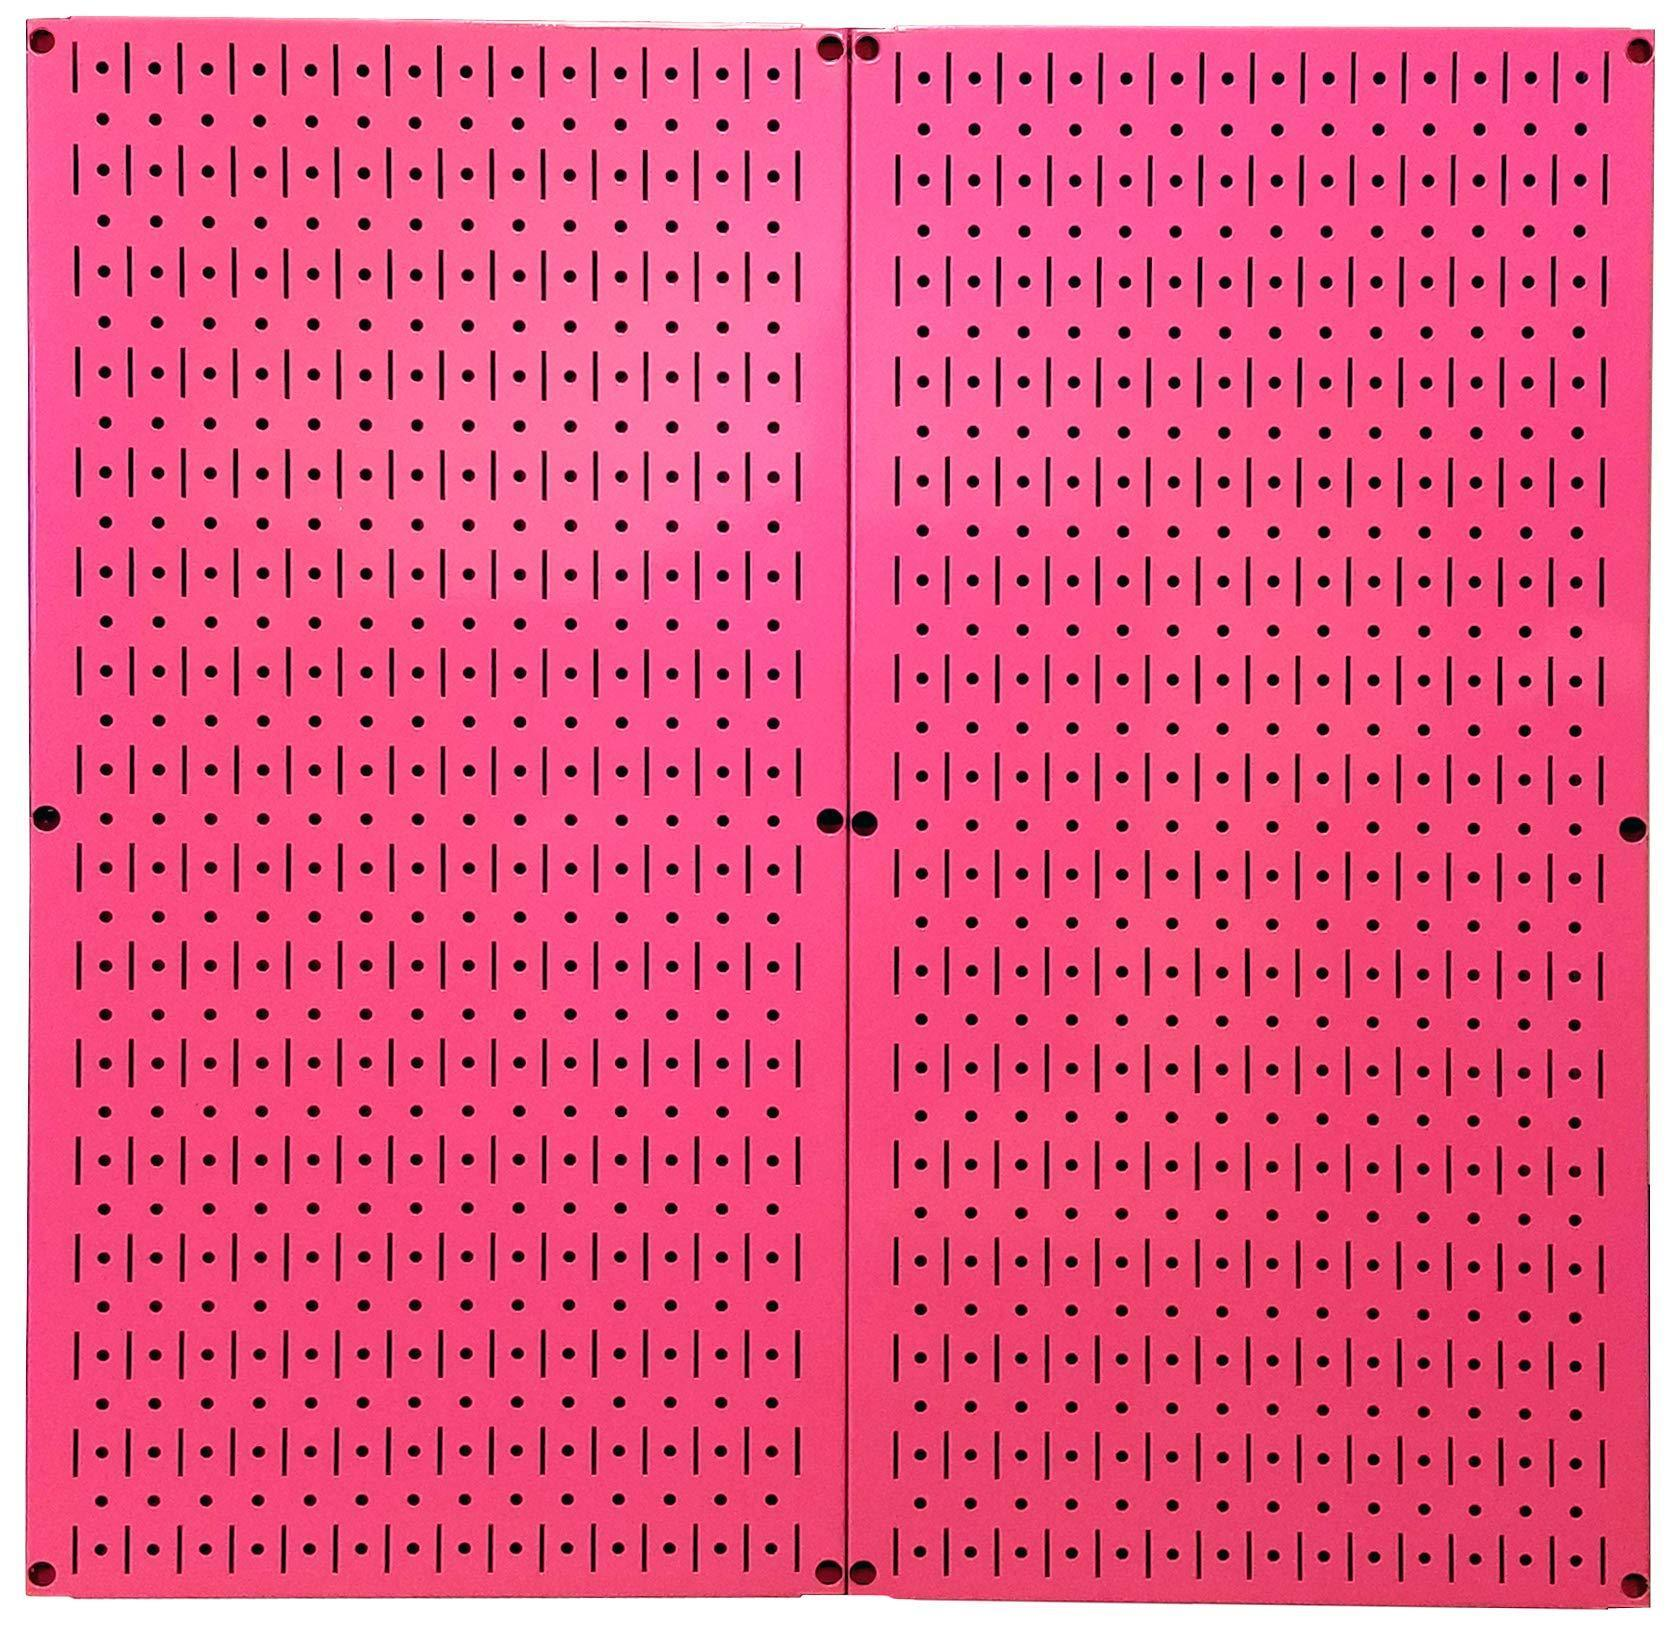 Exclusive wall control pink pegboard metal pegboard pack of pink peg boards two 32 inch tall x 16 inch wide colorful pink pegboard wall storage panels